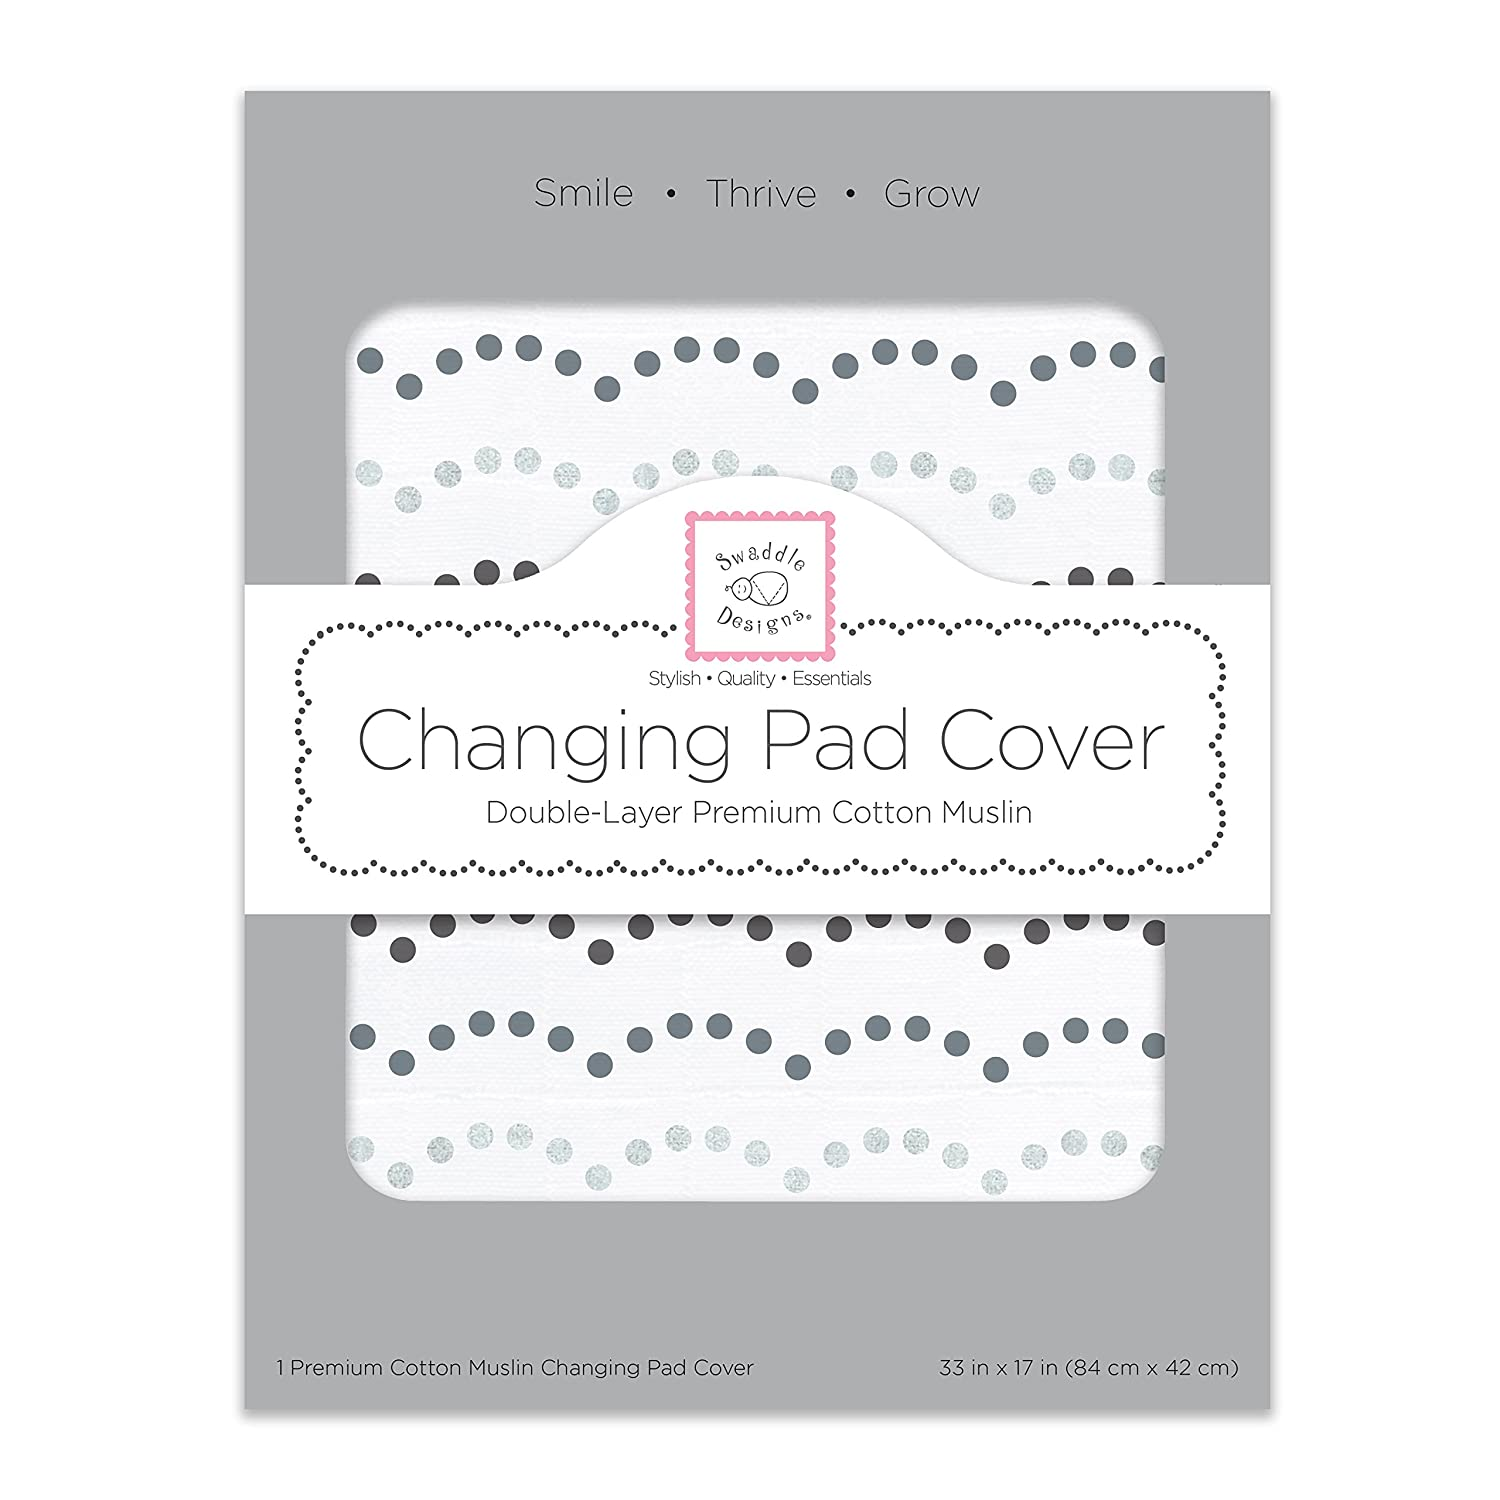 SwaddleDesigns Cotton 2-Layer Muslin Changing Pad Cover Sterling Starshine Shimmer